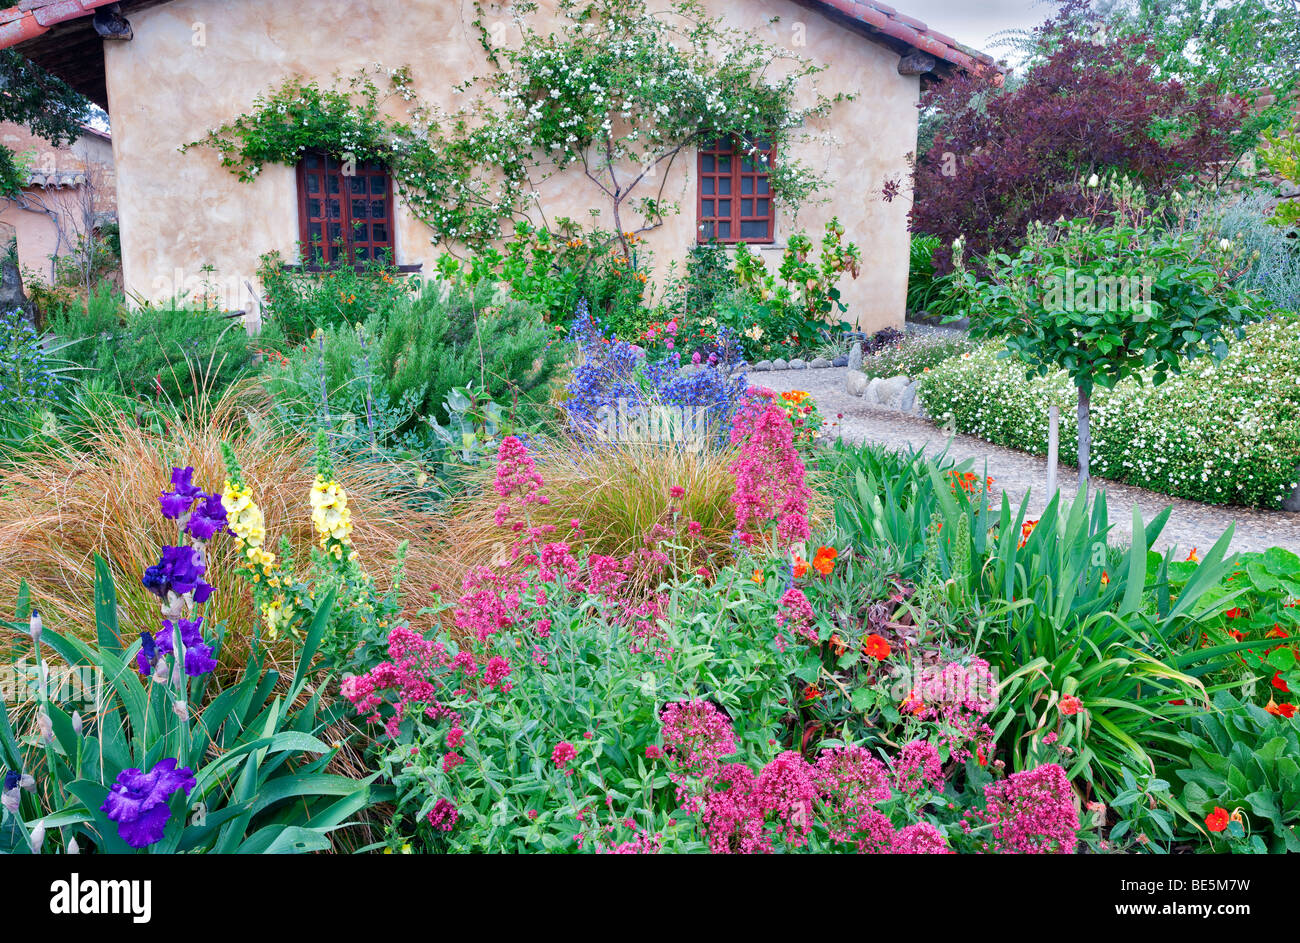 Gardens at the Carmel Mission. Carmel by the Sea, California. - Stock Image